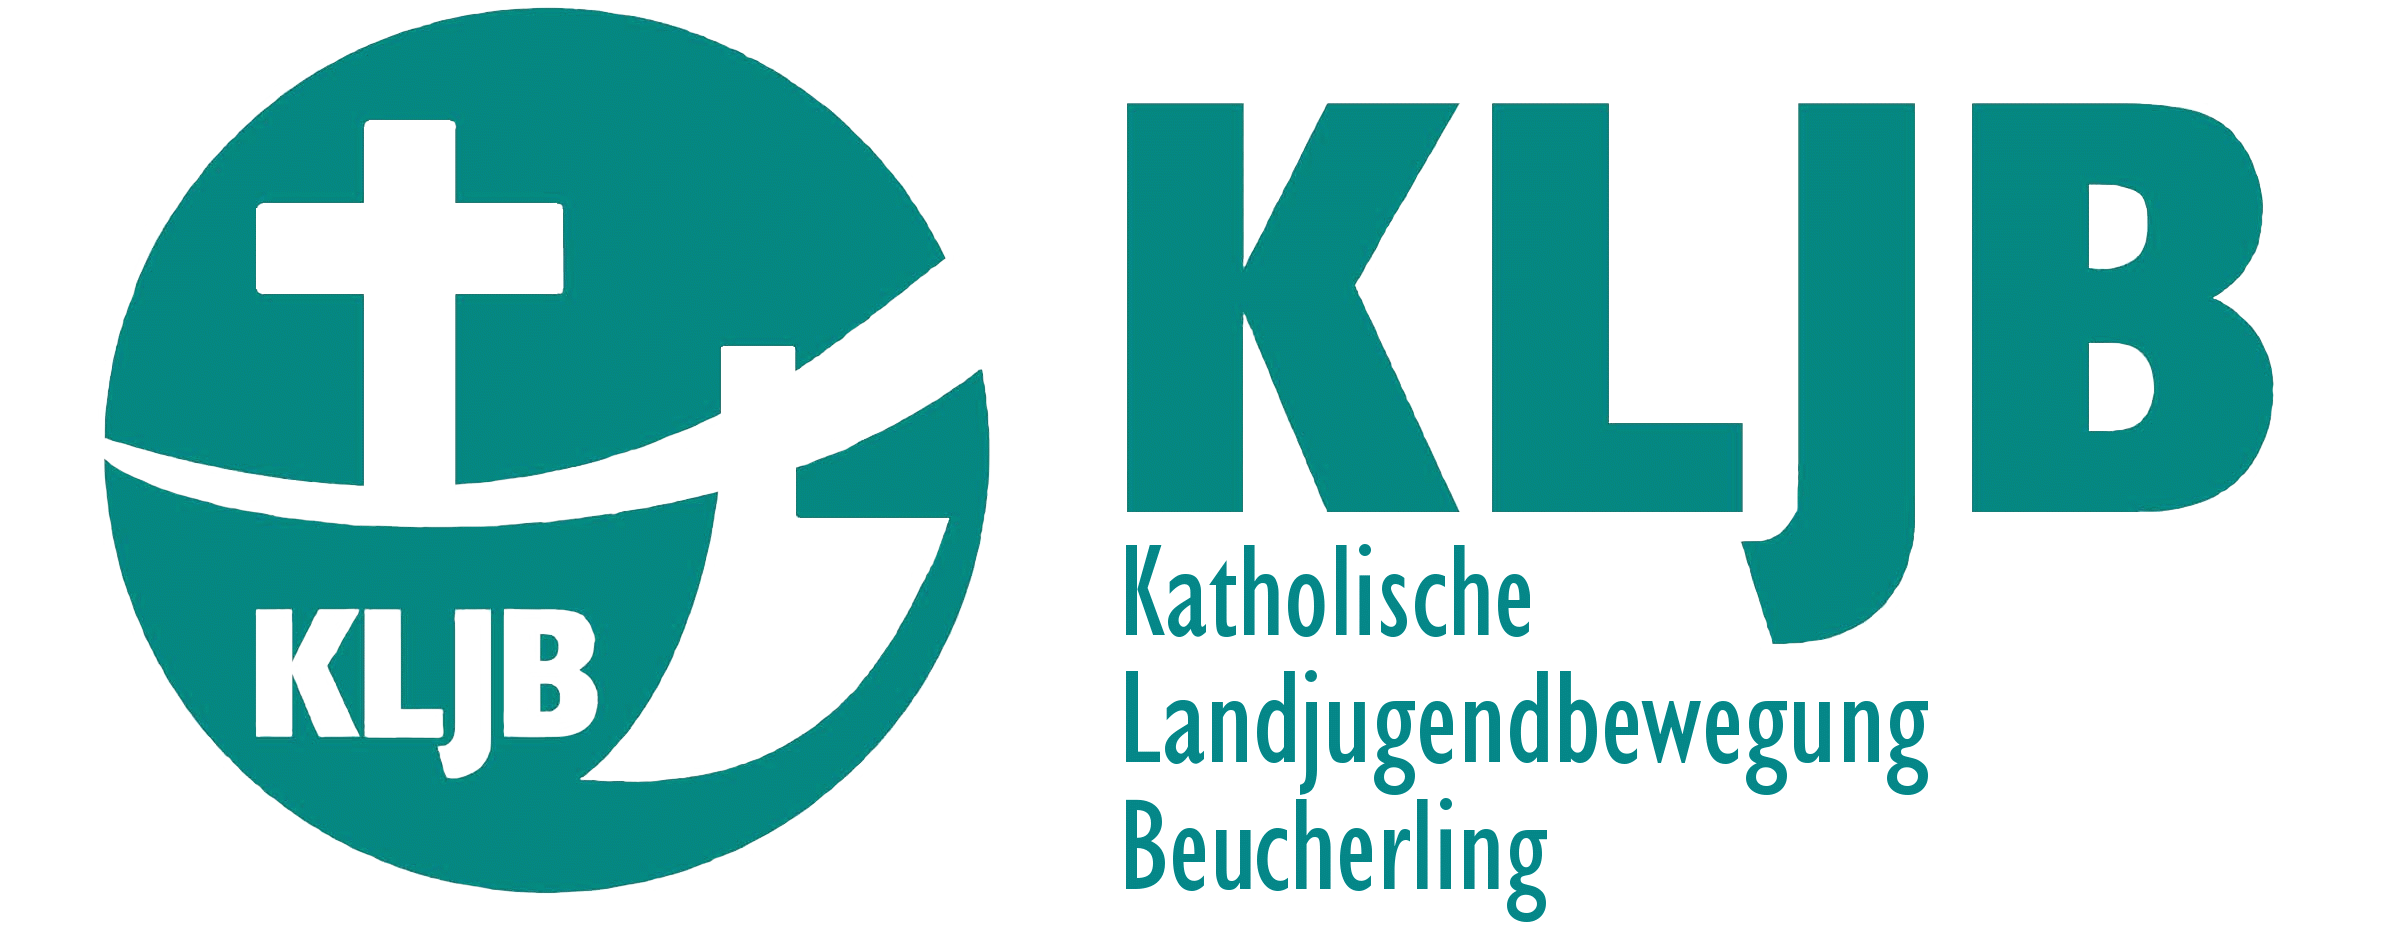 KLJB Beucherling